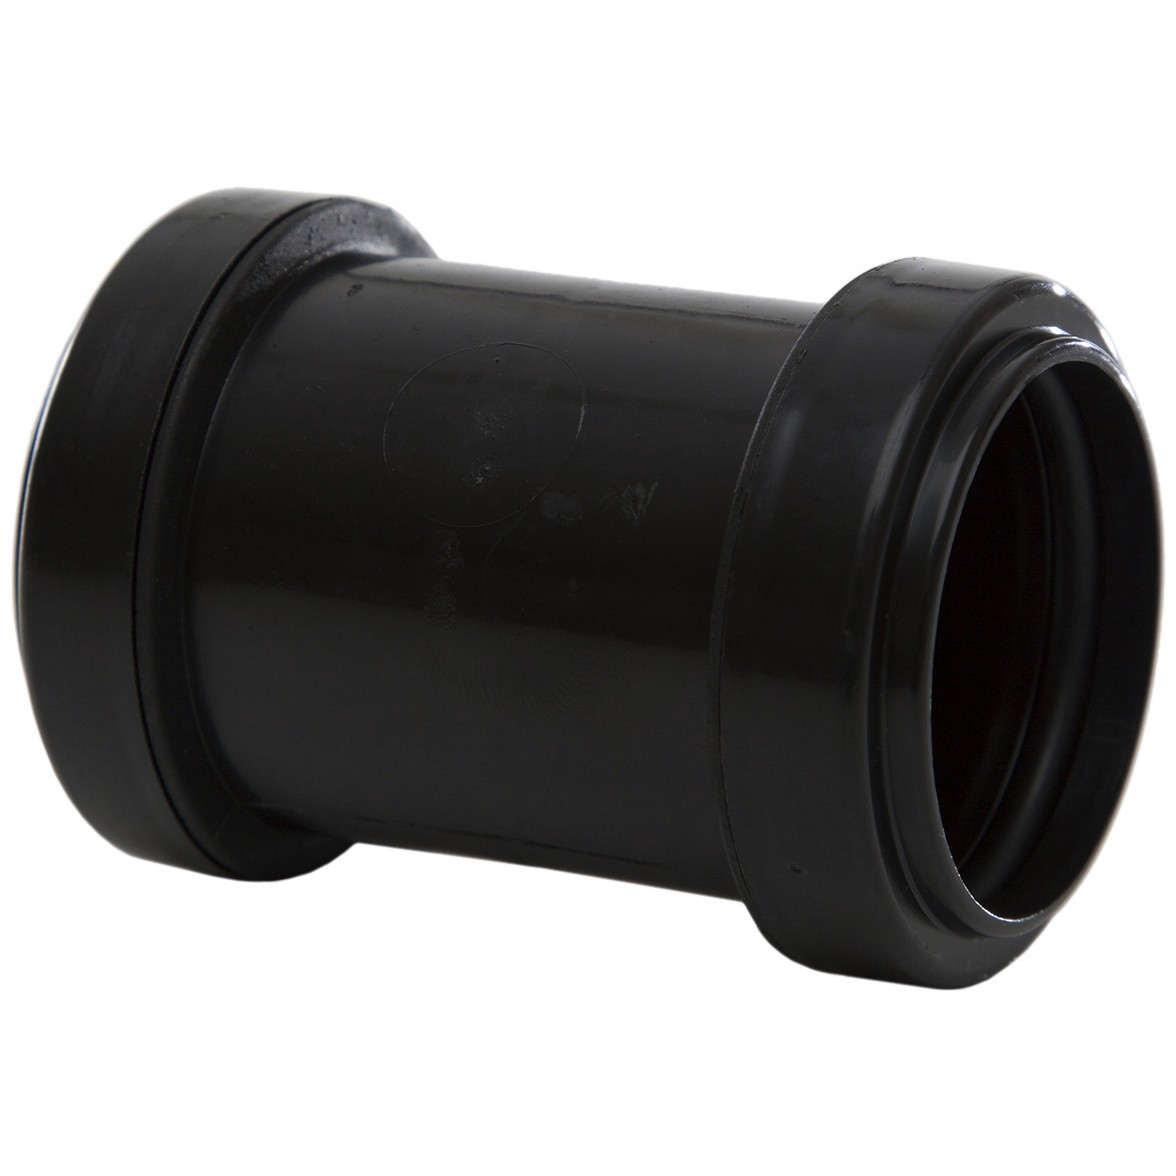 Polypipe 40mm Push Fit Waste Straight Coupler - Black